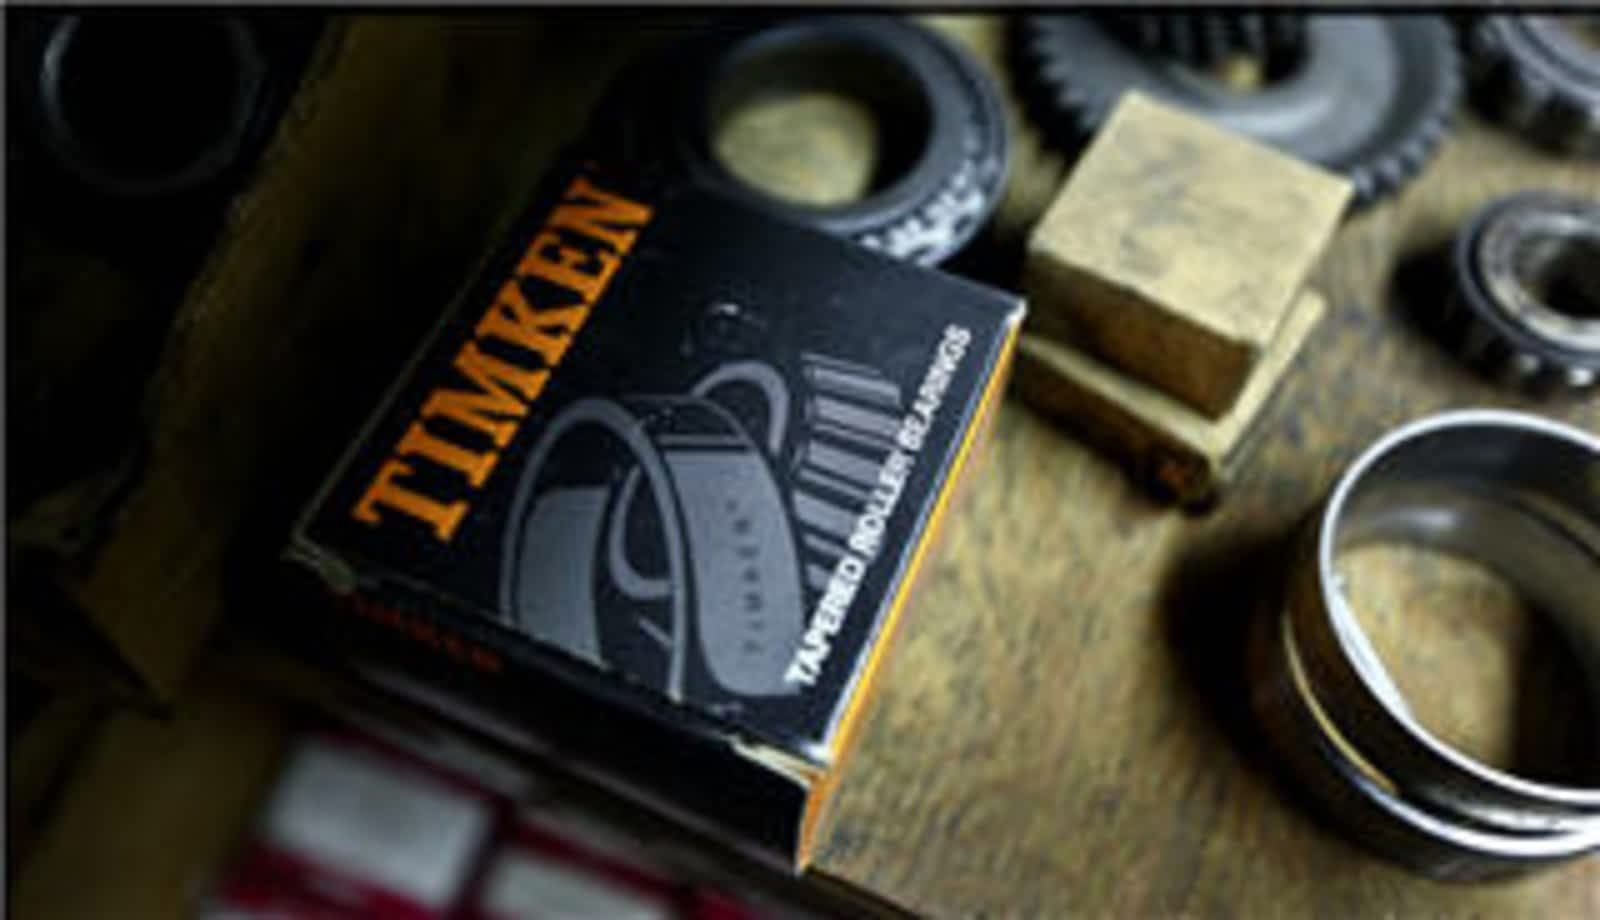 Timken auto parts on a table